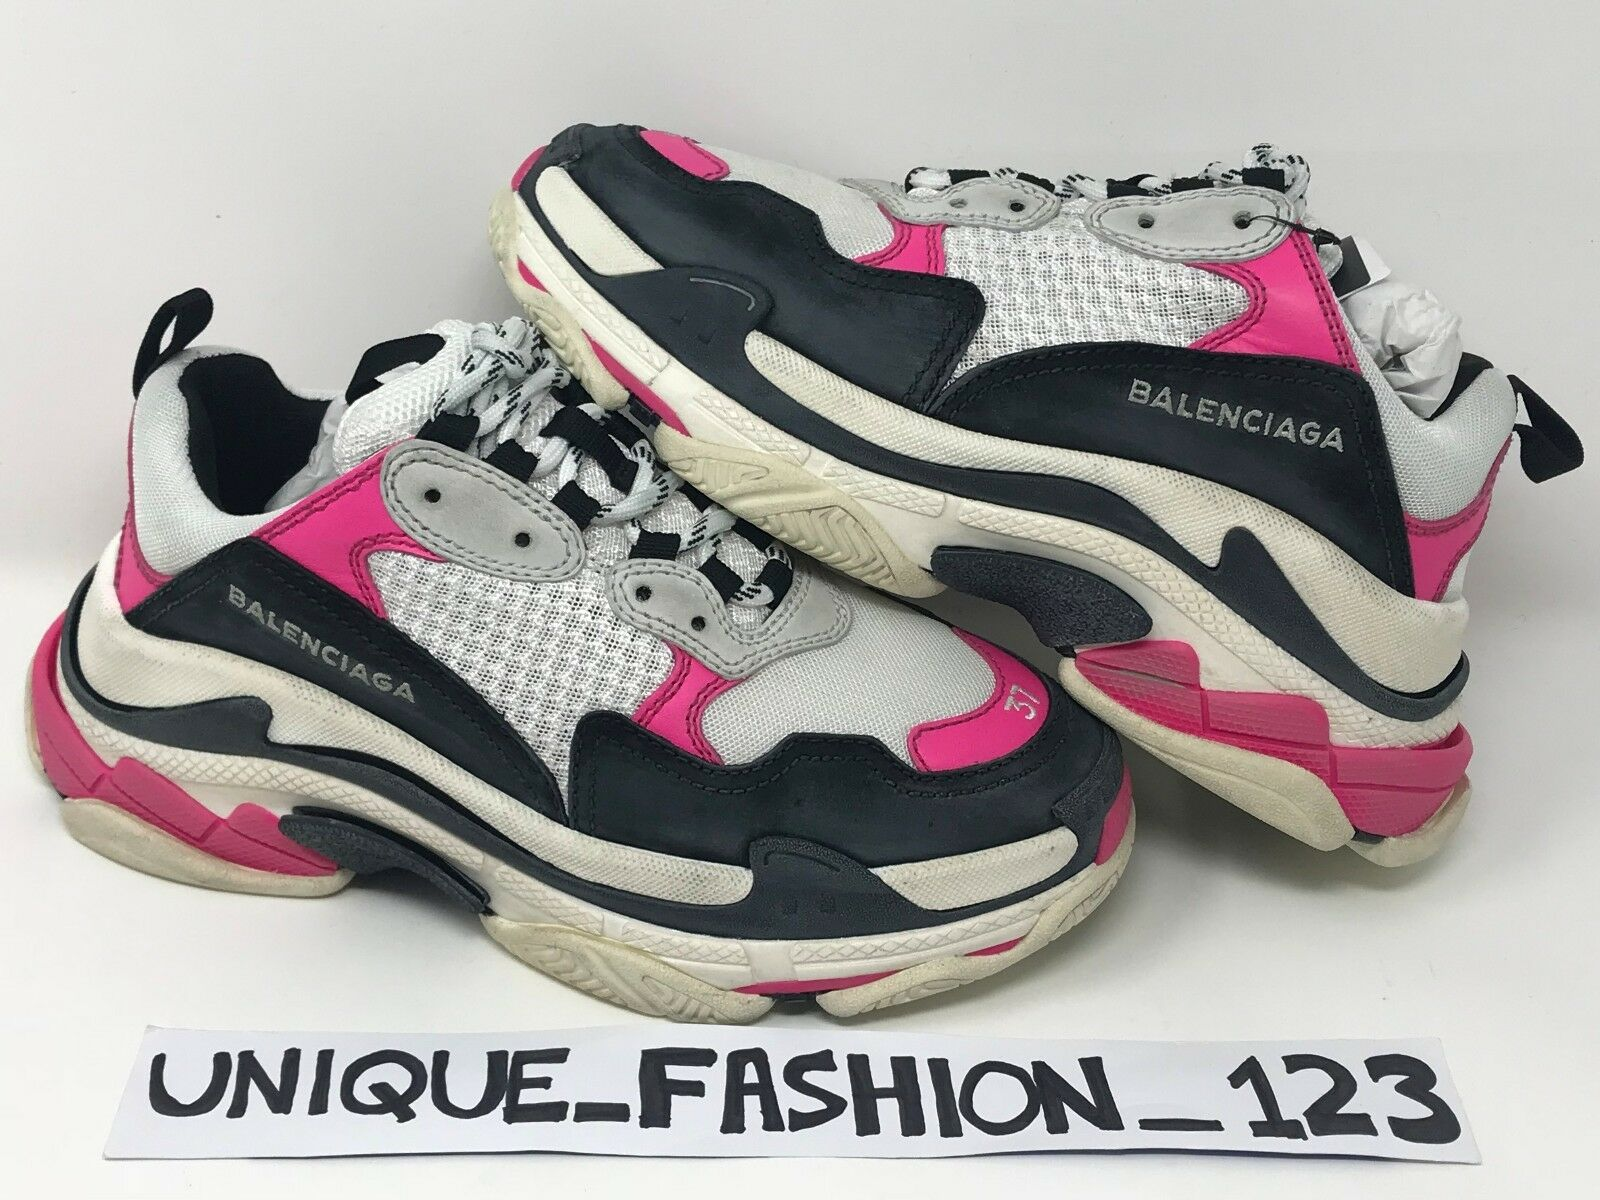 BALENCIAGA TRIPLE S PINK WHITE BLACK US 9 UK 6 EU 39 26CM WOMEN'S SNEAKER